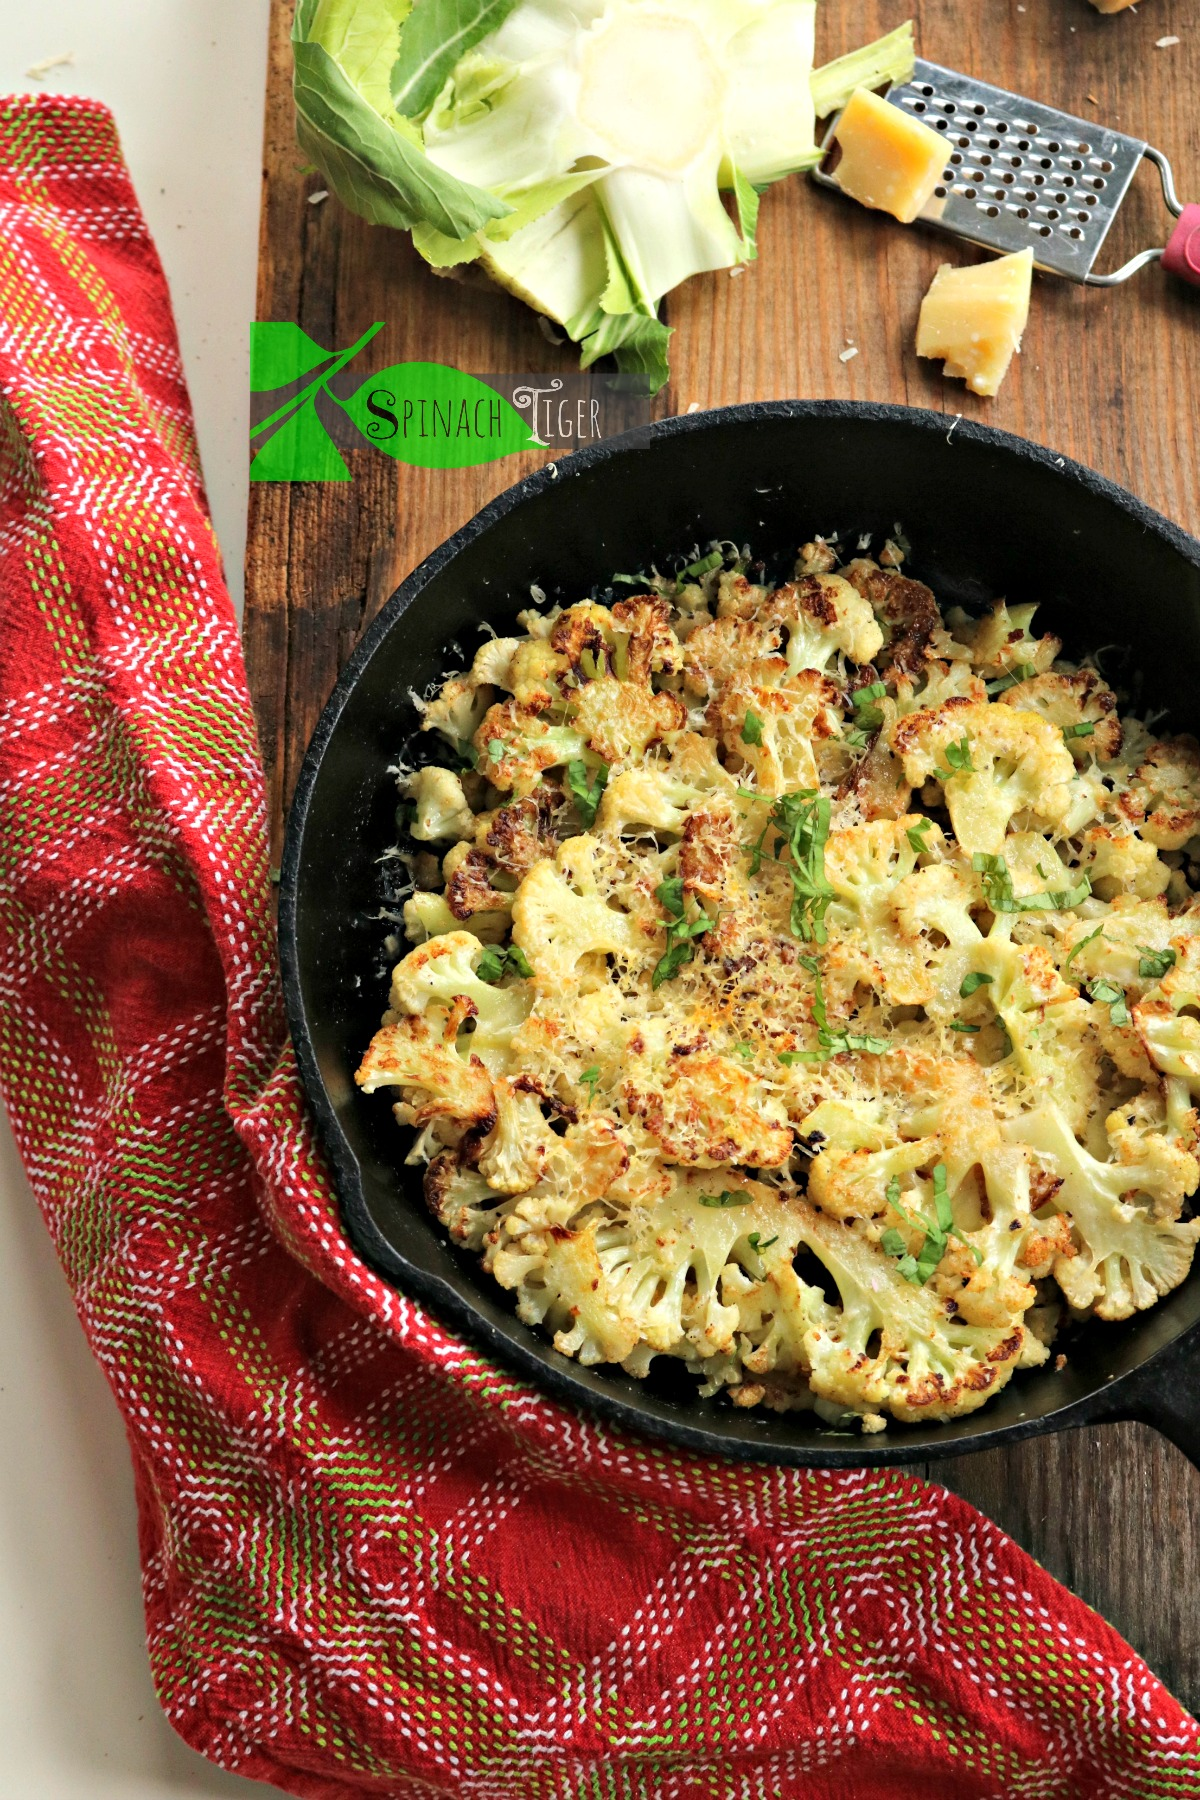 Baked Cauliflower and Holiday Side Dishes from Spinach Tiger